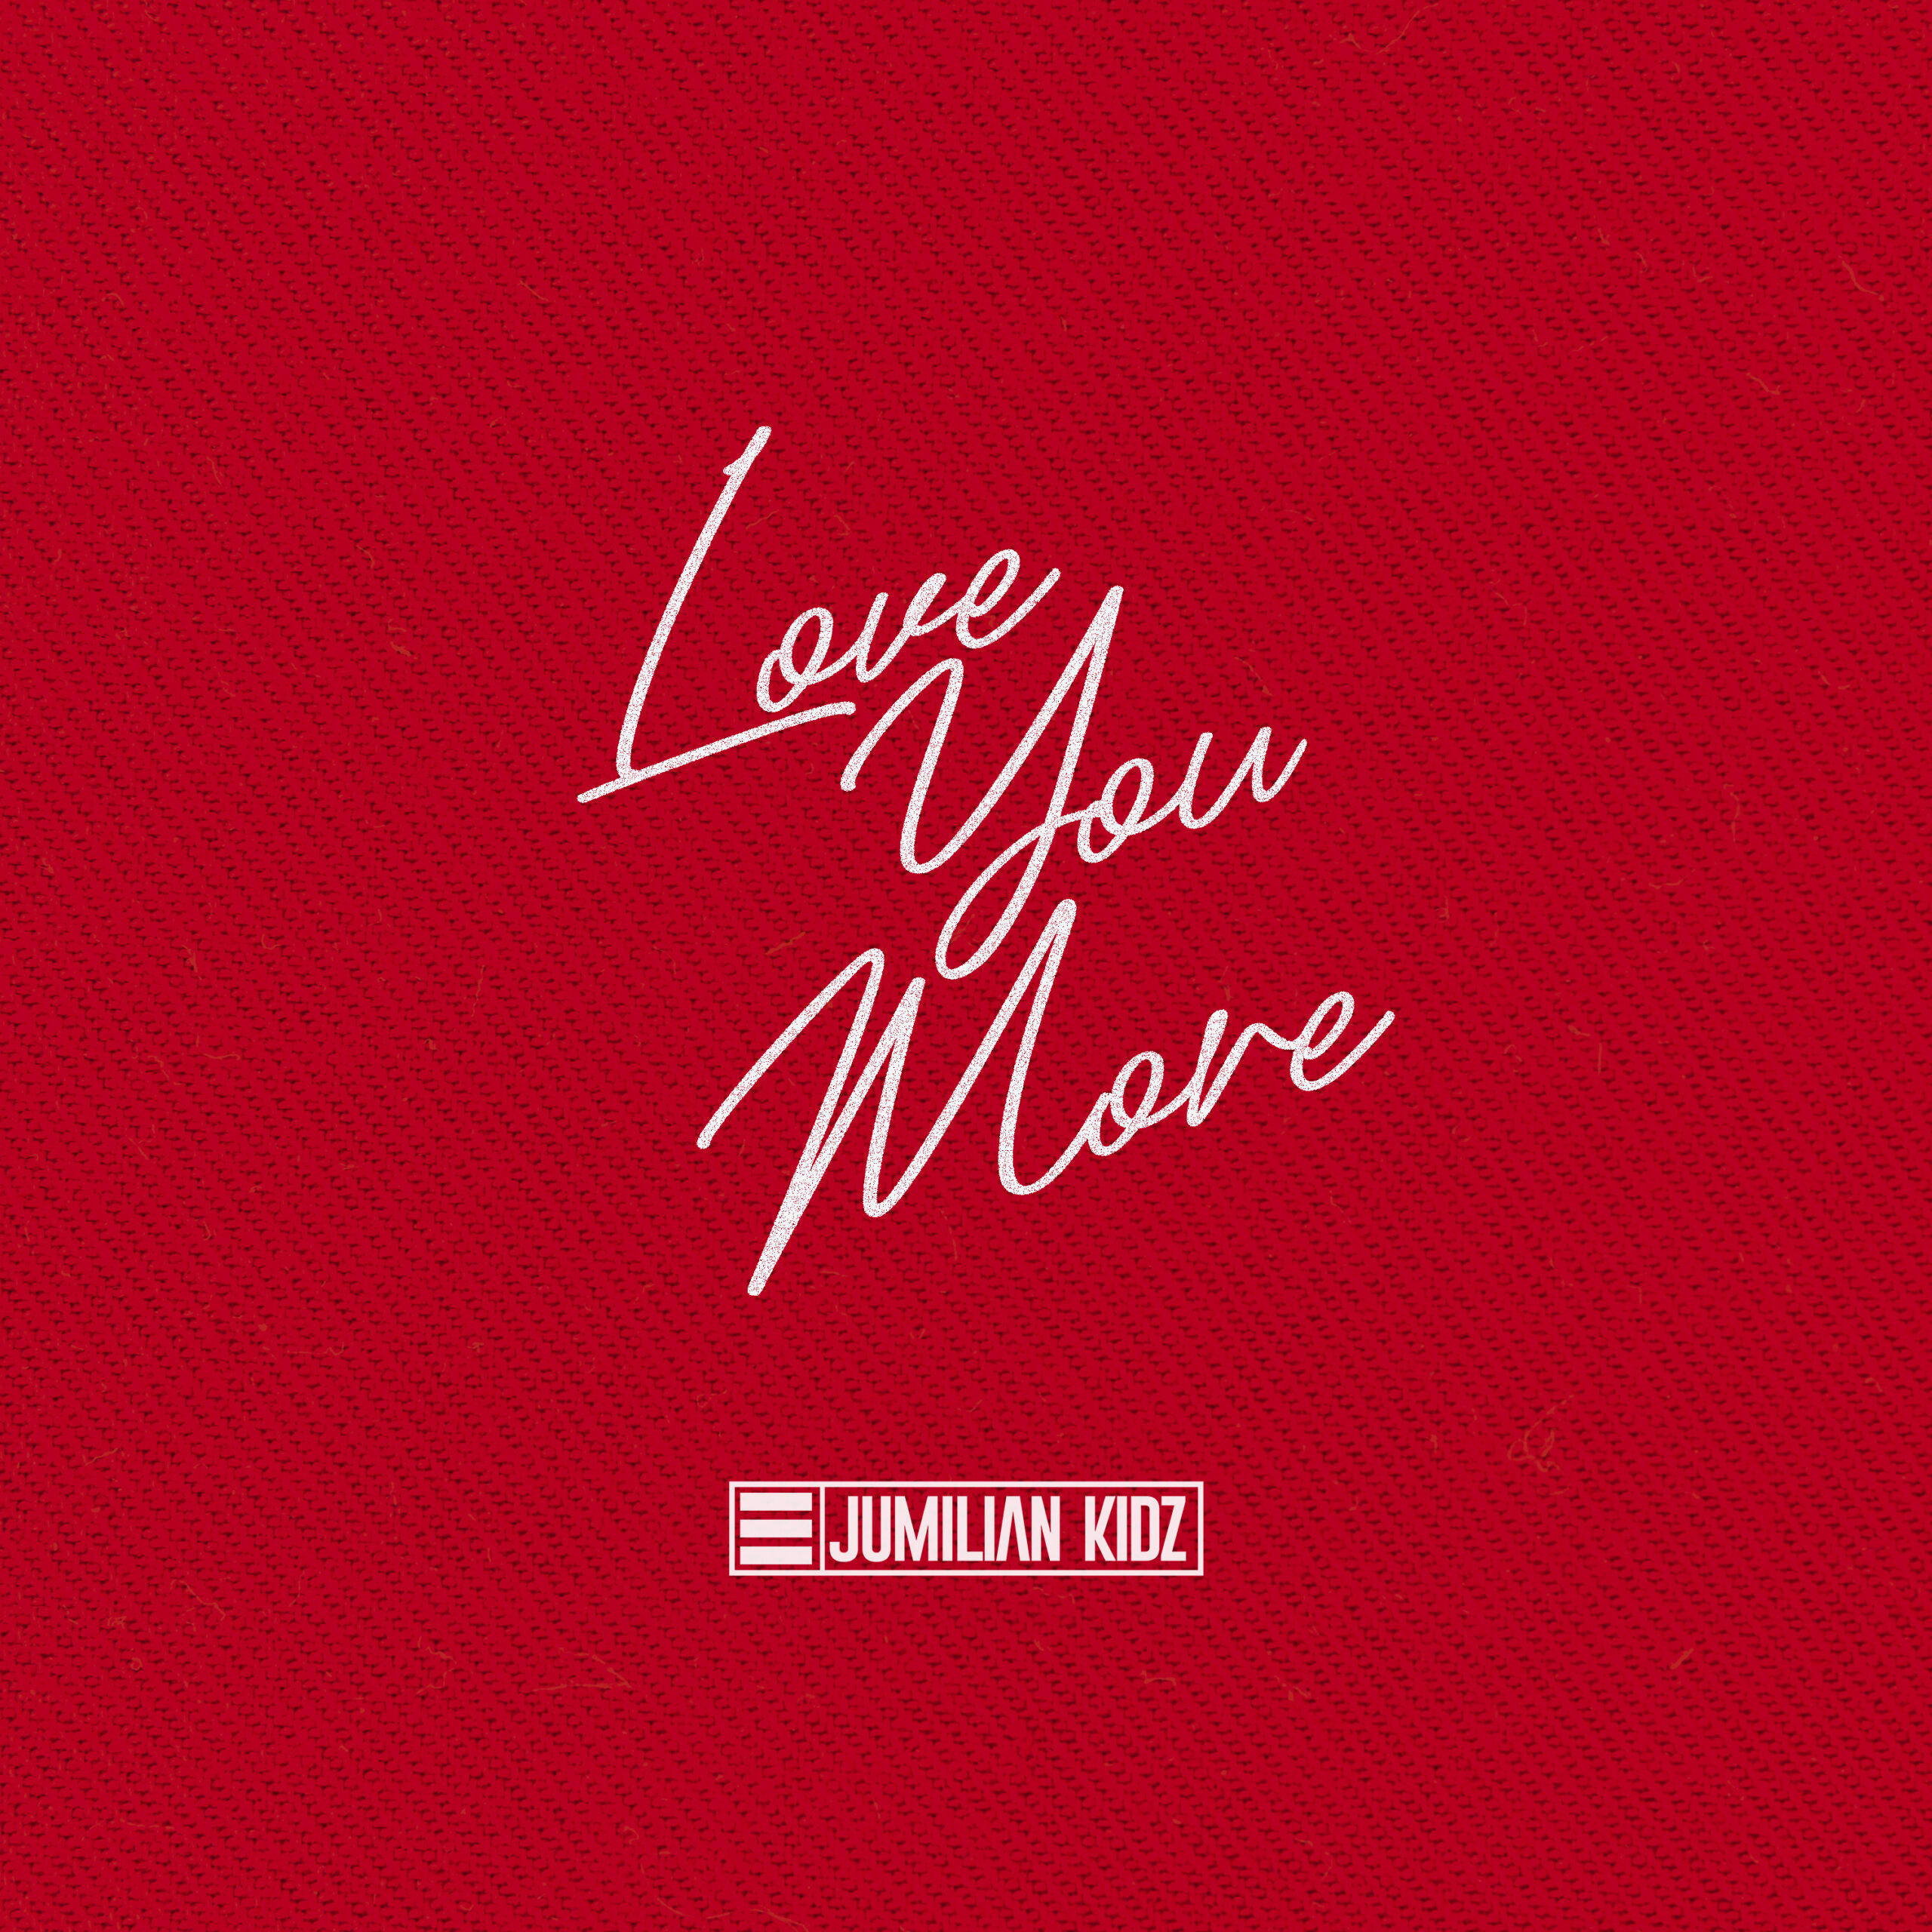 LOVE YOU MORE by Jumilian Kidz (Artwork)